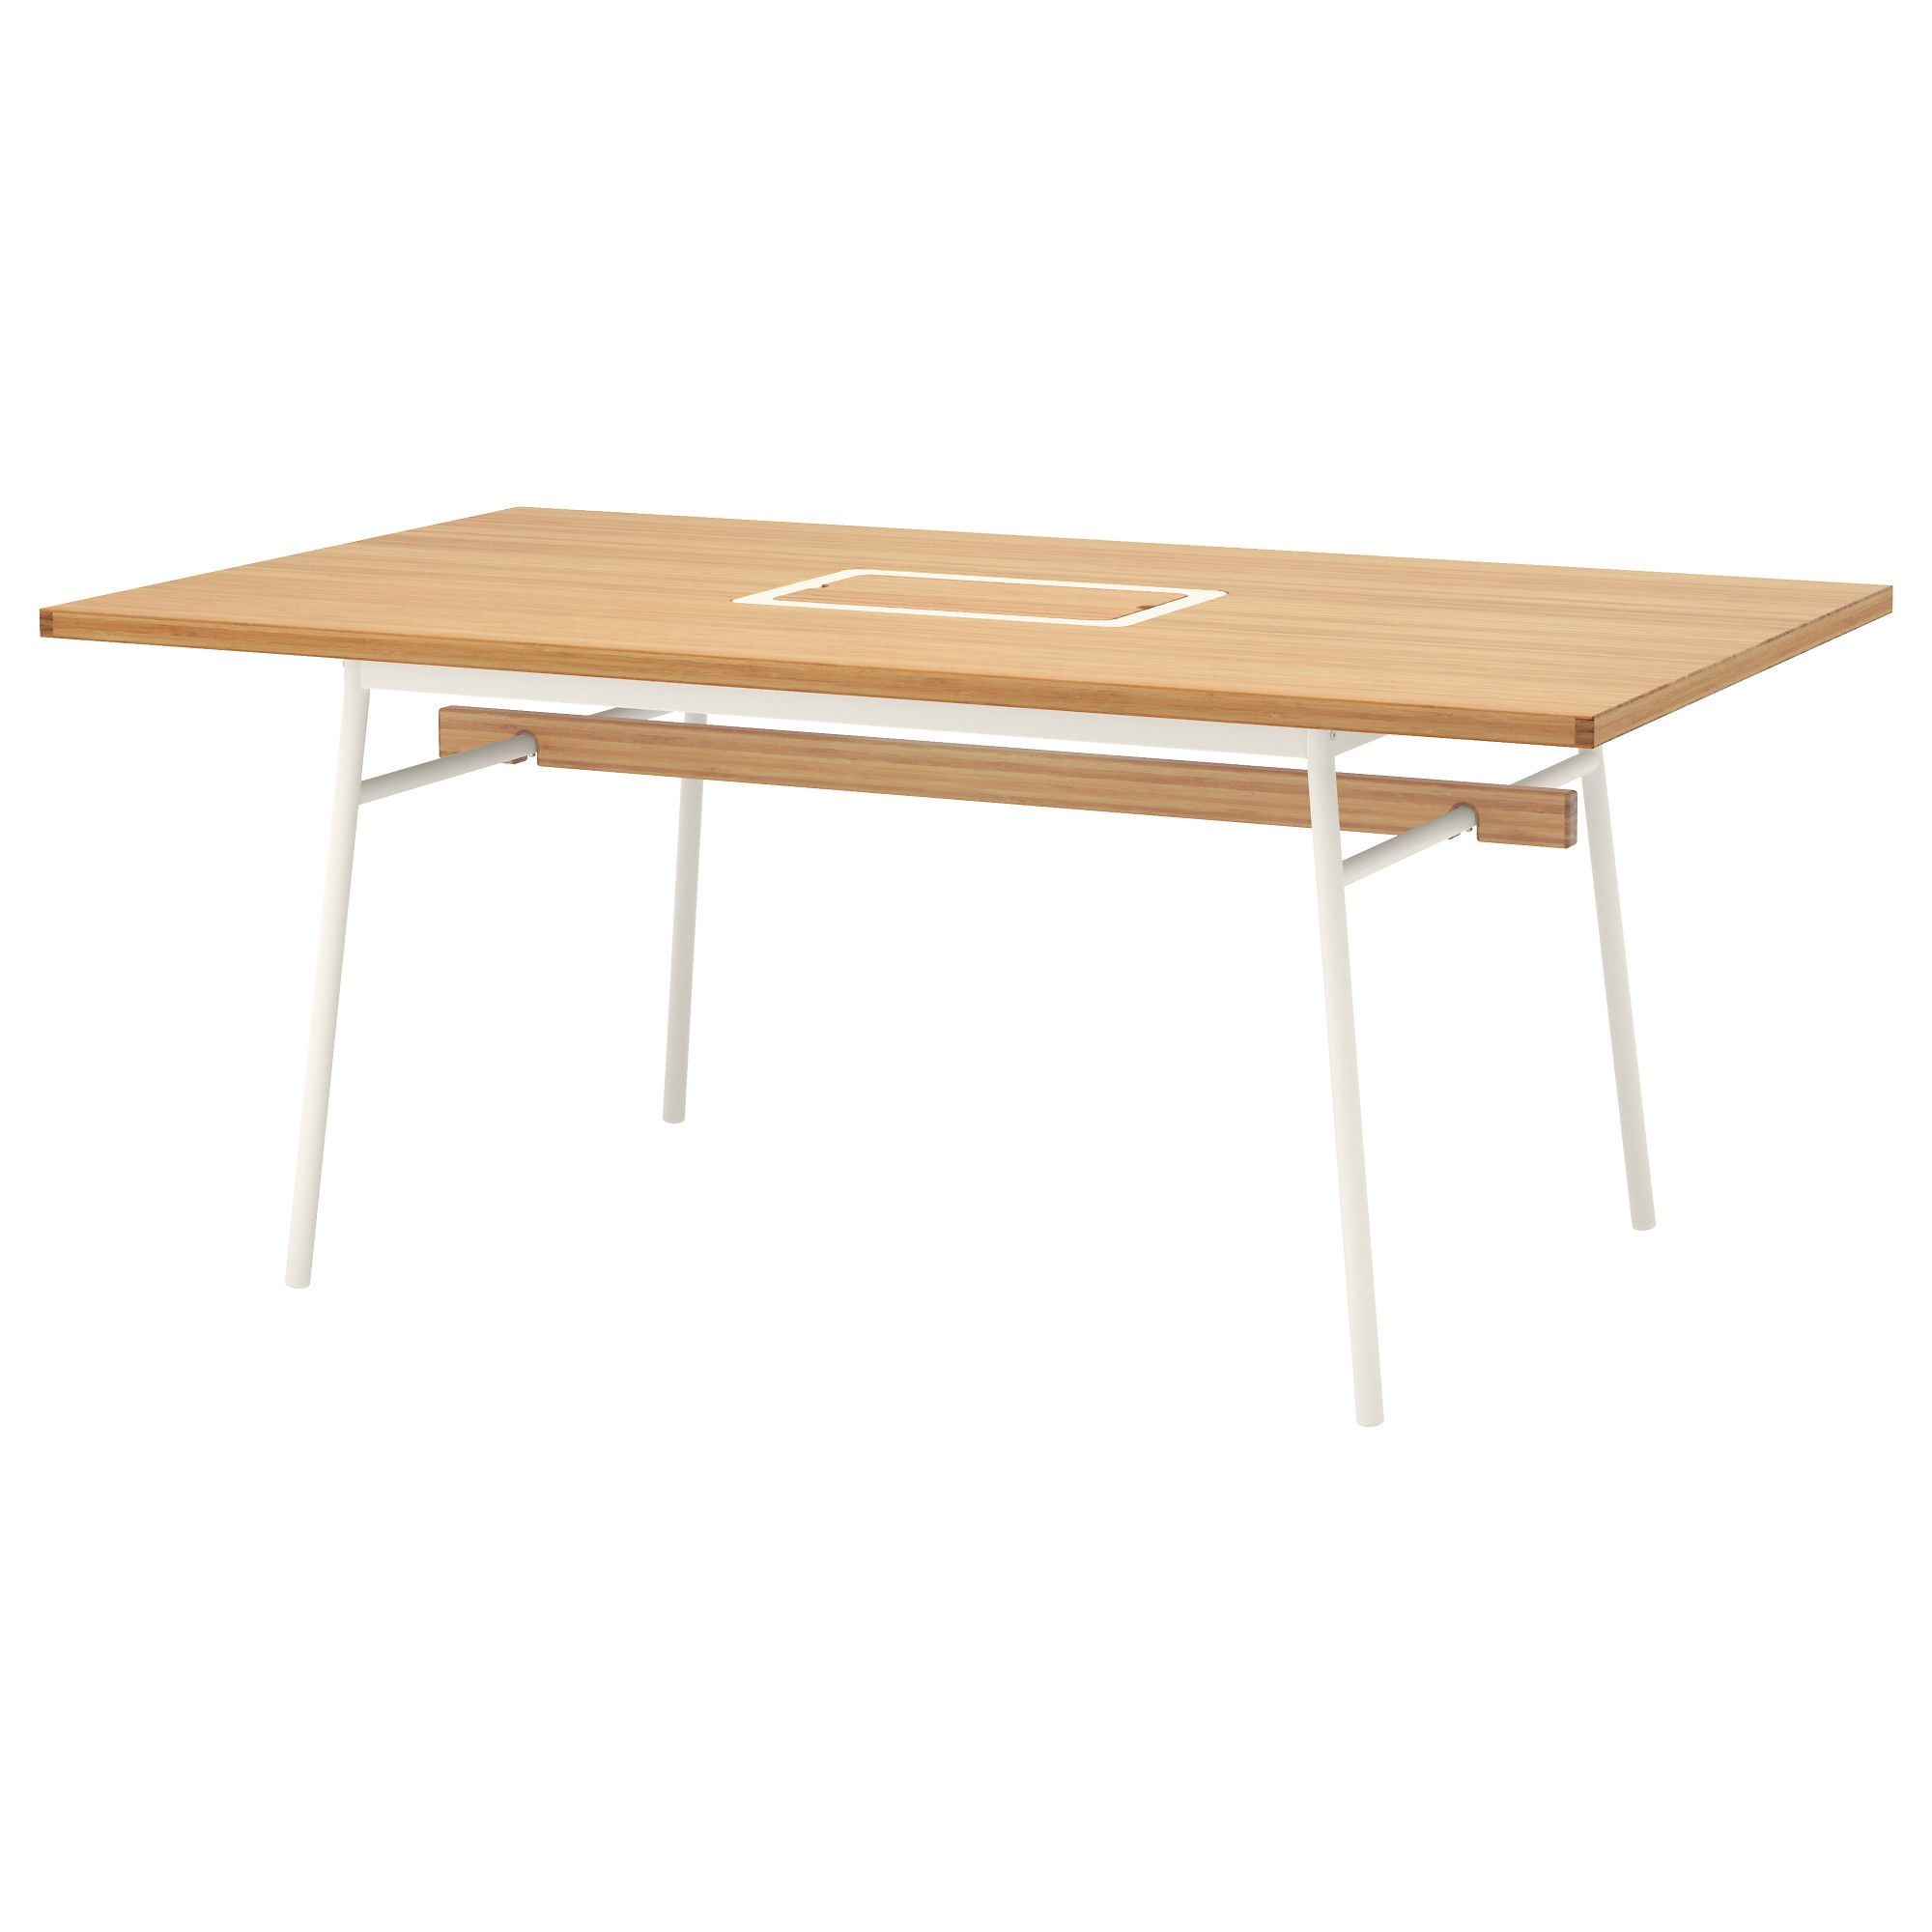 Ikea Vässad Tisch AnvÄndbar Table Bamboo White Ikea Ikea Dining Table